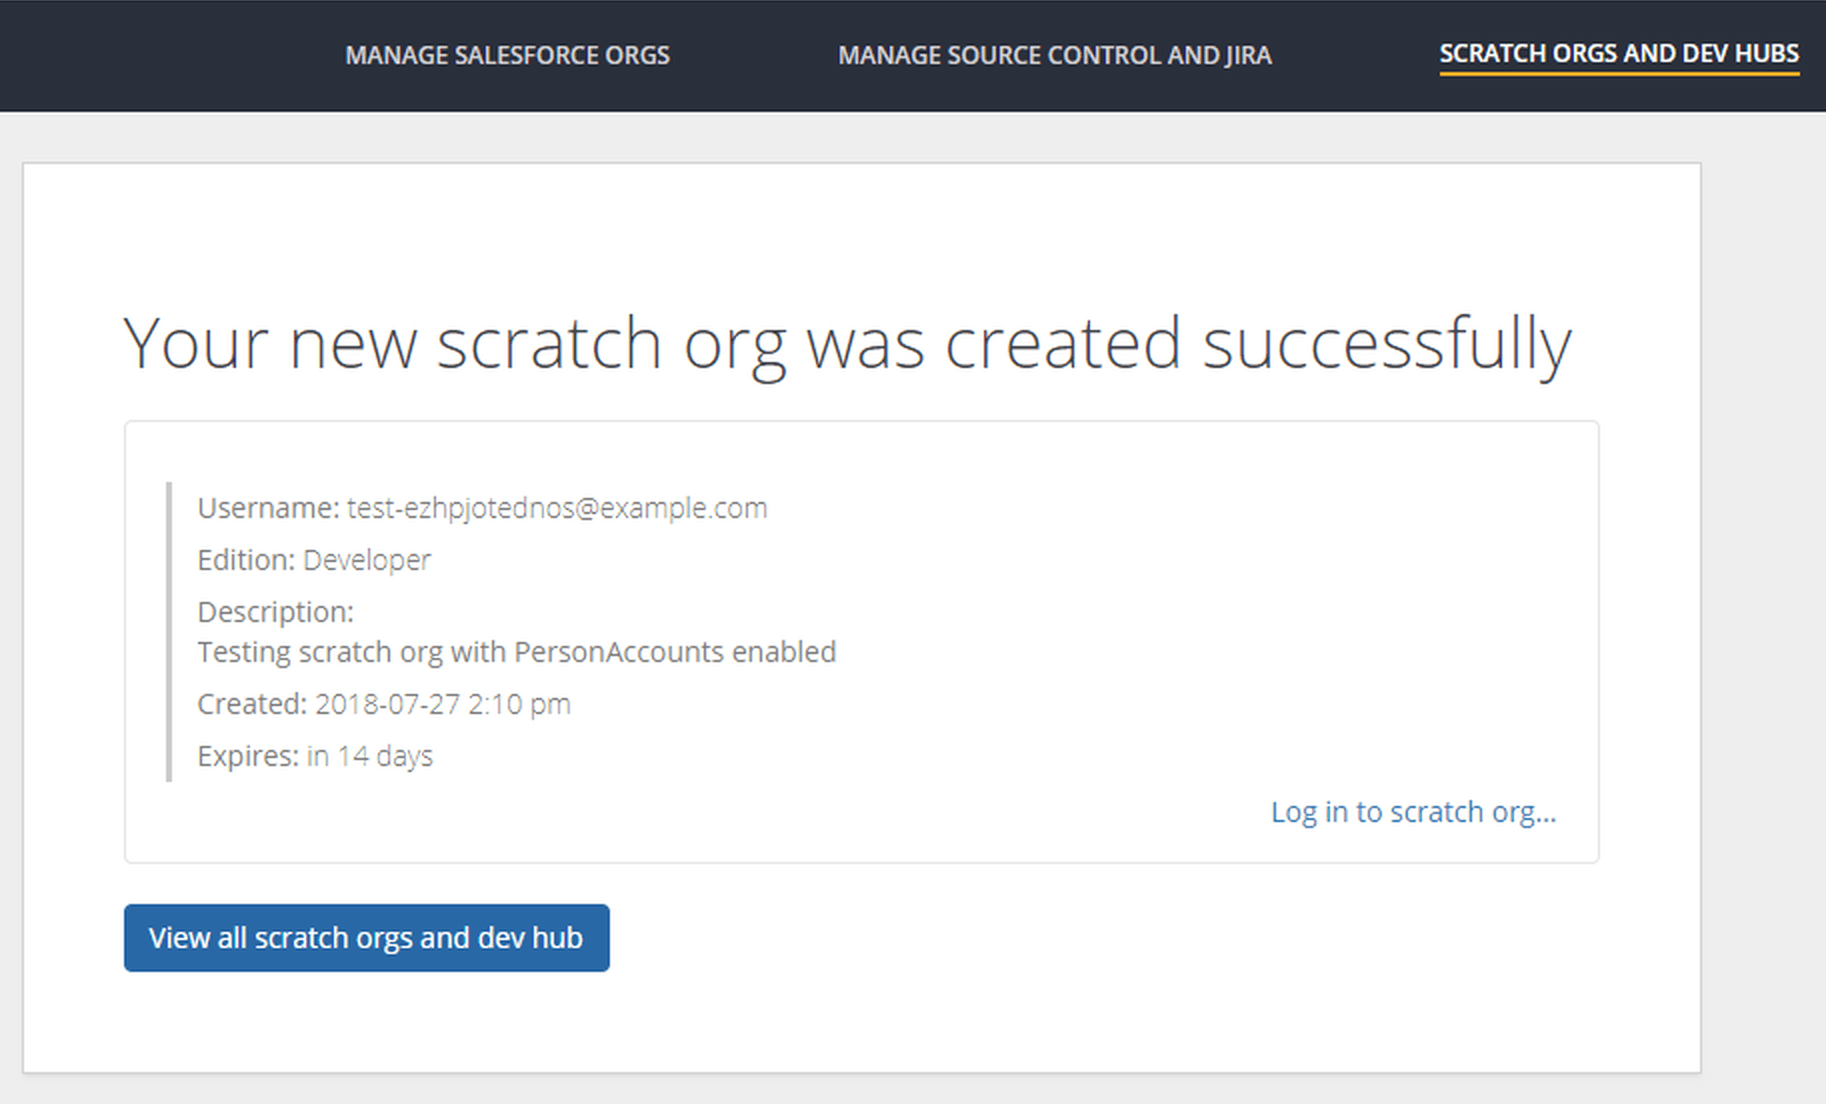 Once you've successfully created your new scratch org, you can log in with just a click.